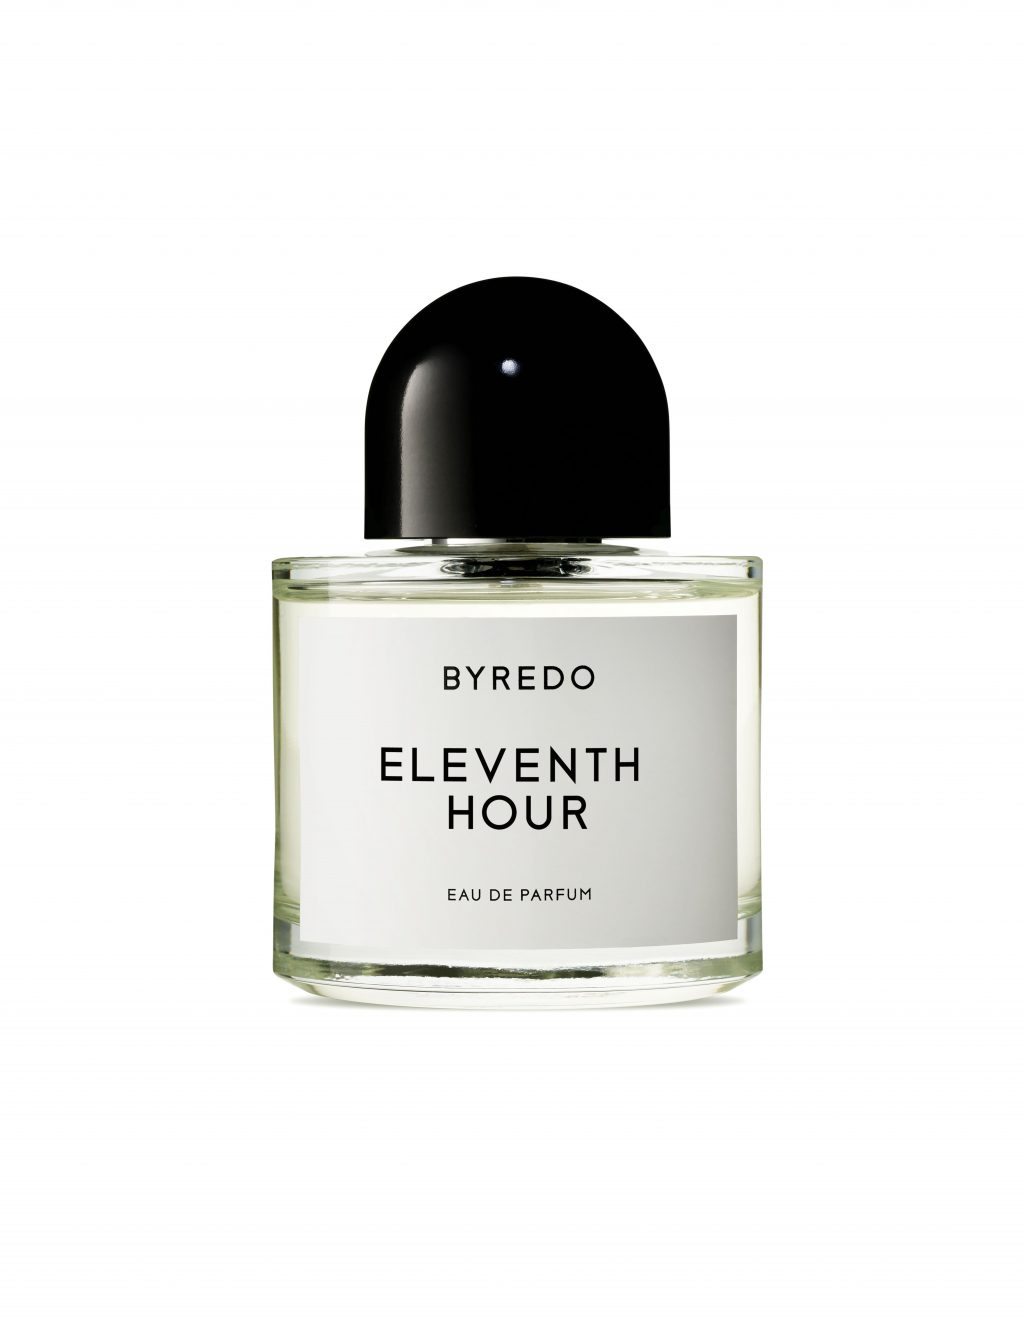 8 New Fragrances That Evoke the Spirit of the Fall Season